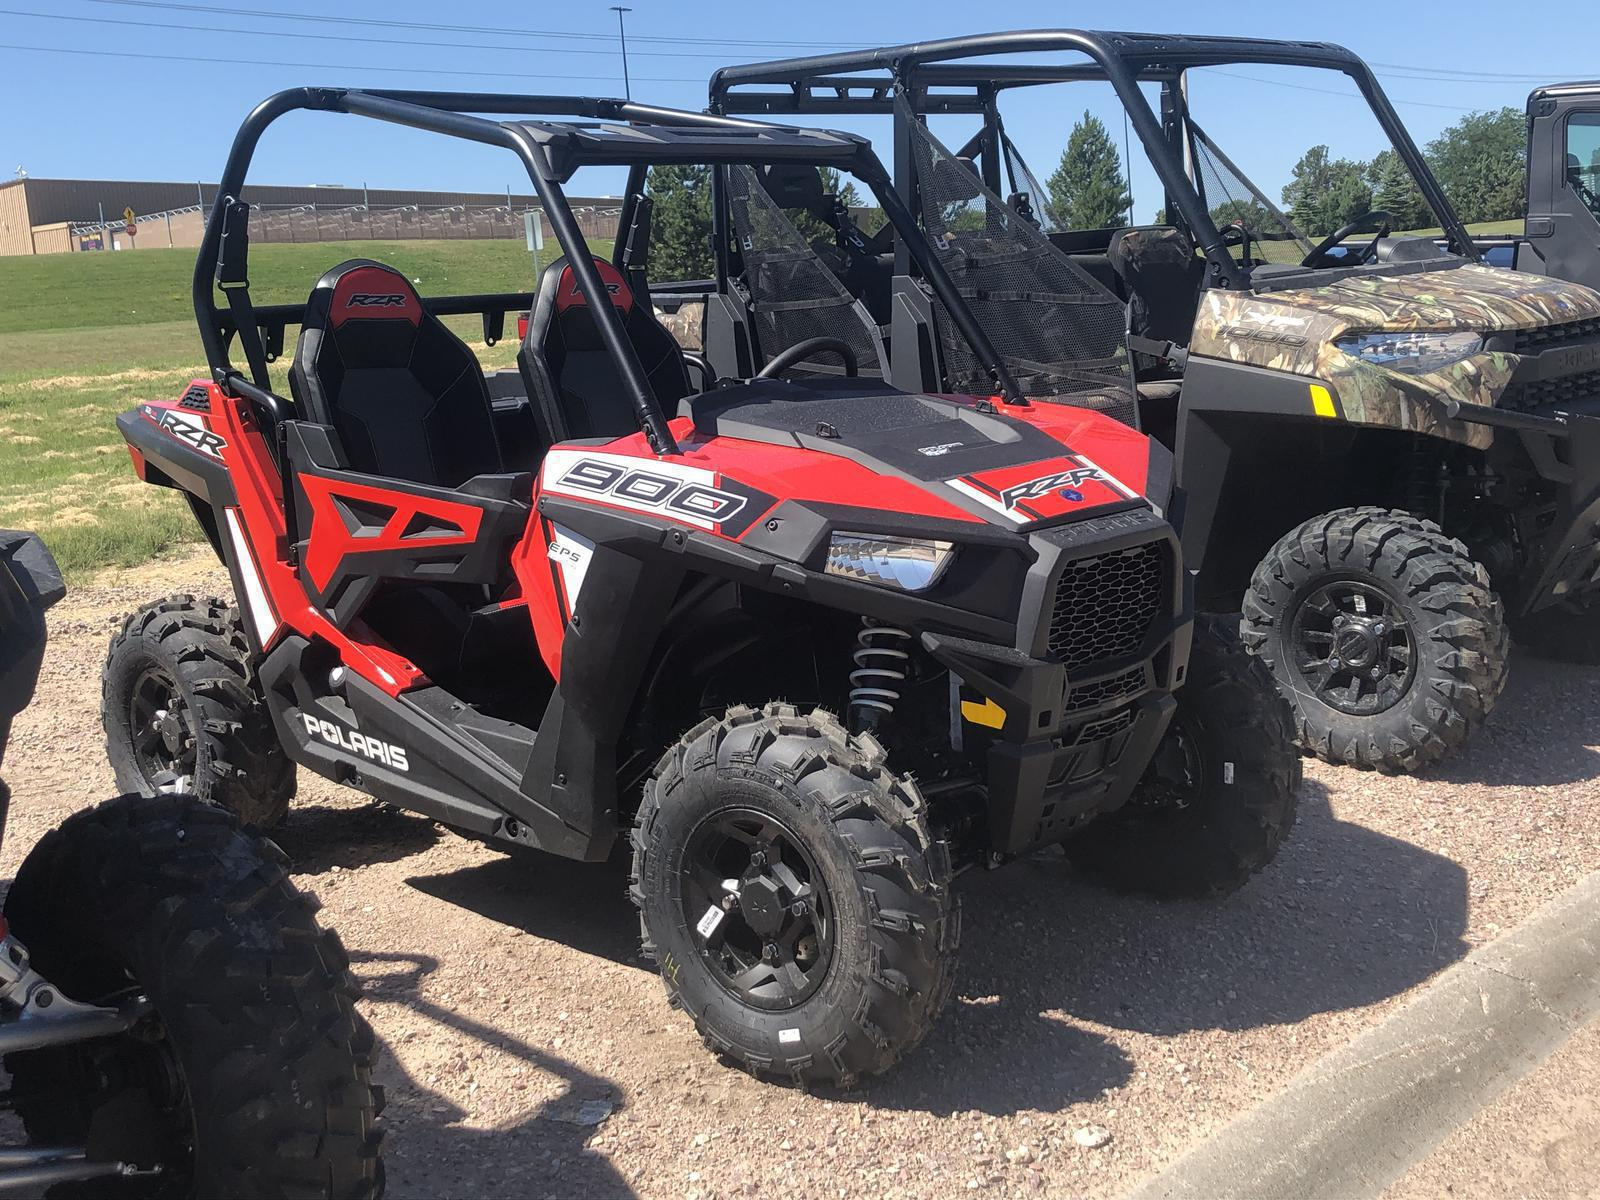 Inventory from Bobcat and Polaris Industries POLARIS OF